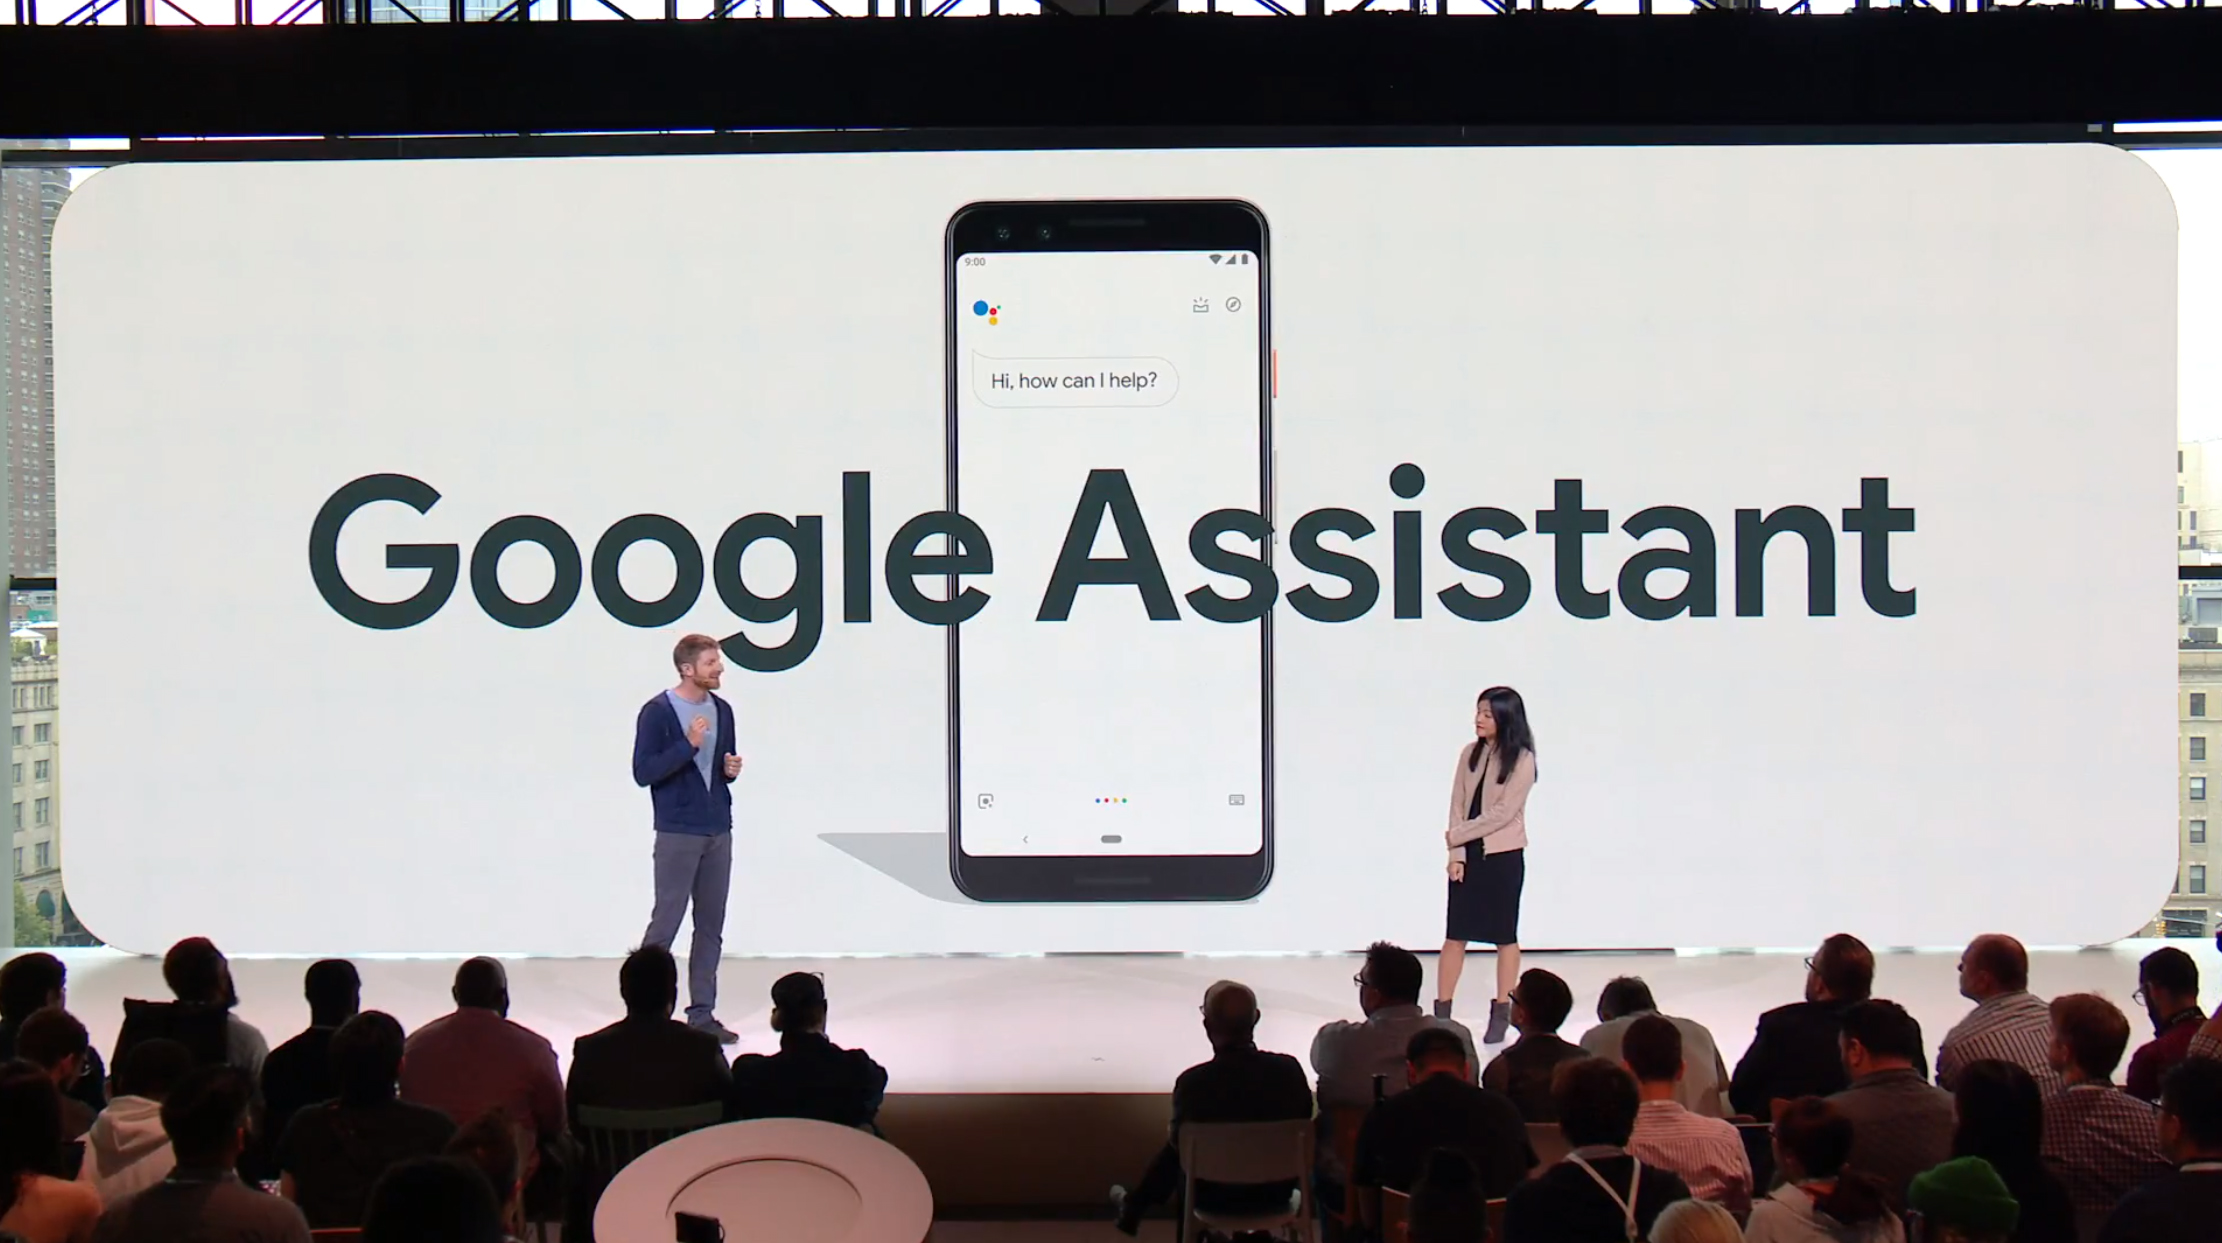 Google Assistant will soon be on 1 billion devices, but still can't